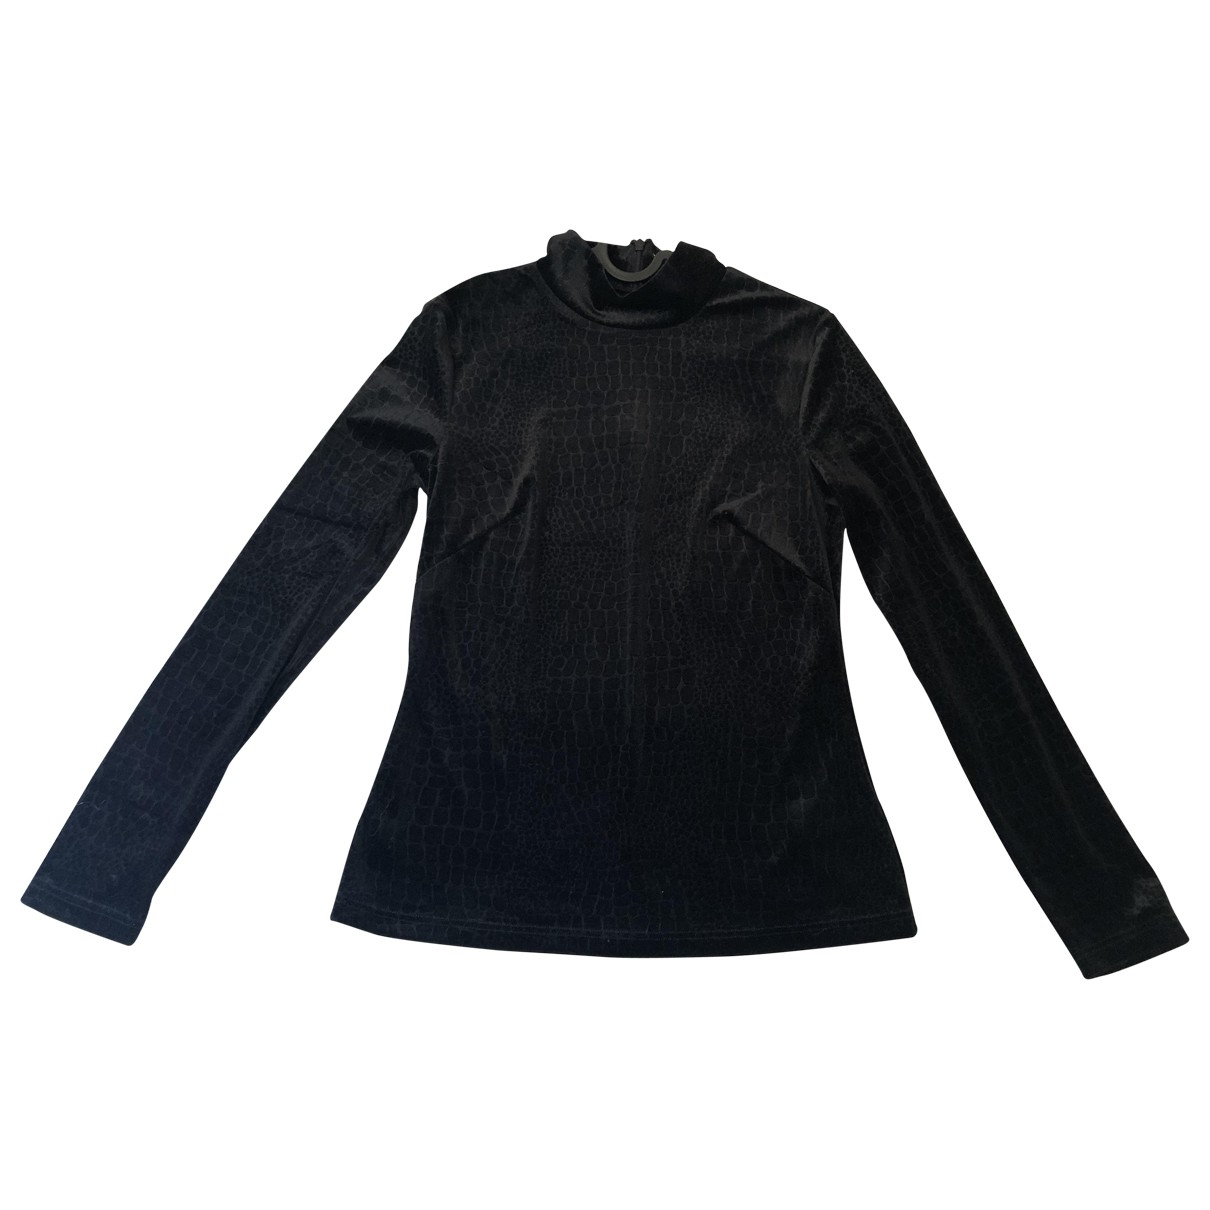 & Other Stories \N Top in  Schwarz Polyester